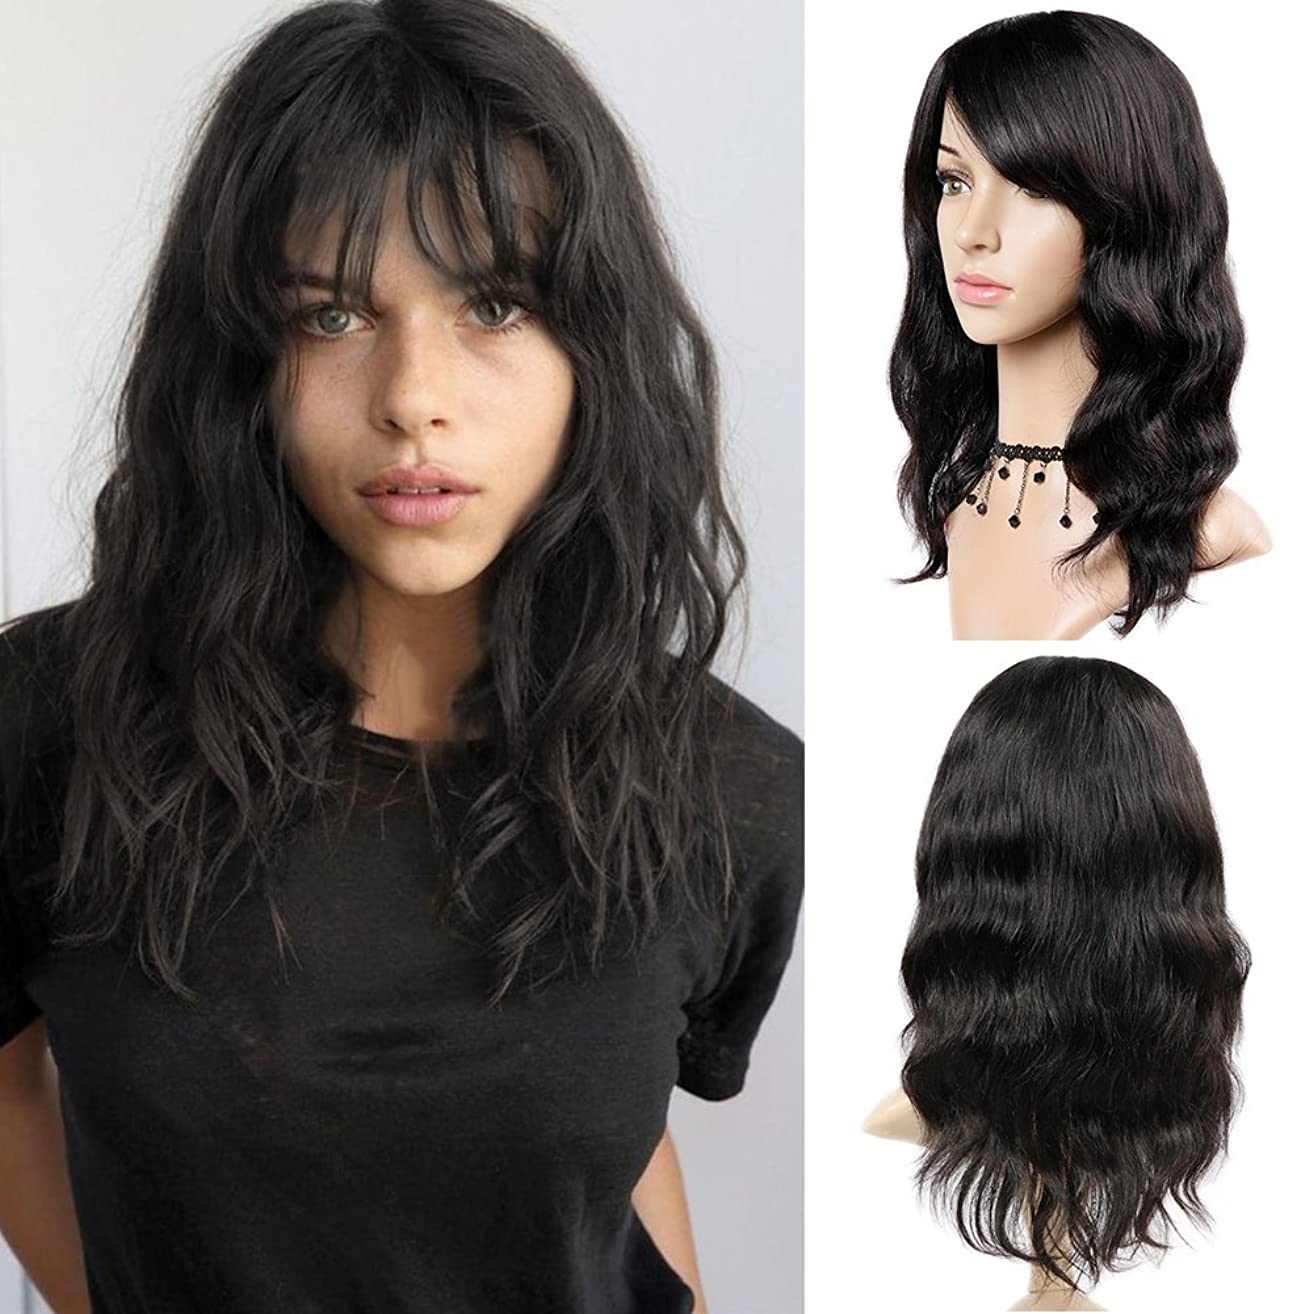 WIGNEE 100% Virgin Human Hair Natural Wave Wigs with Bangs Brazilian Human Hair Wave Wigs Natural Black Color (16